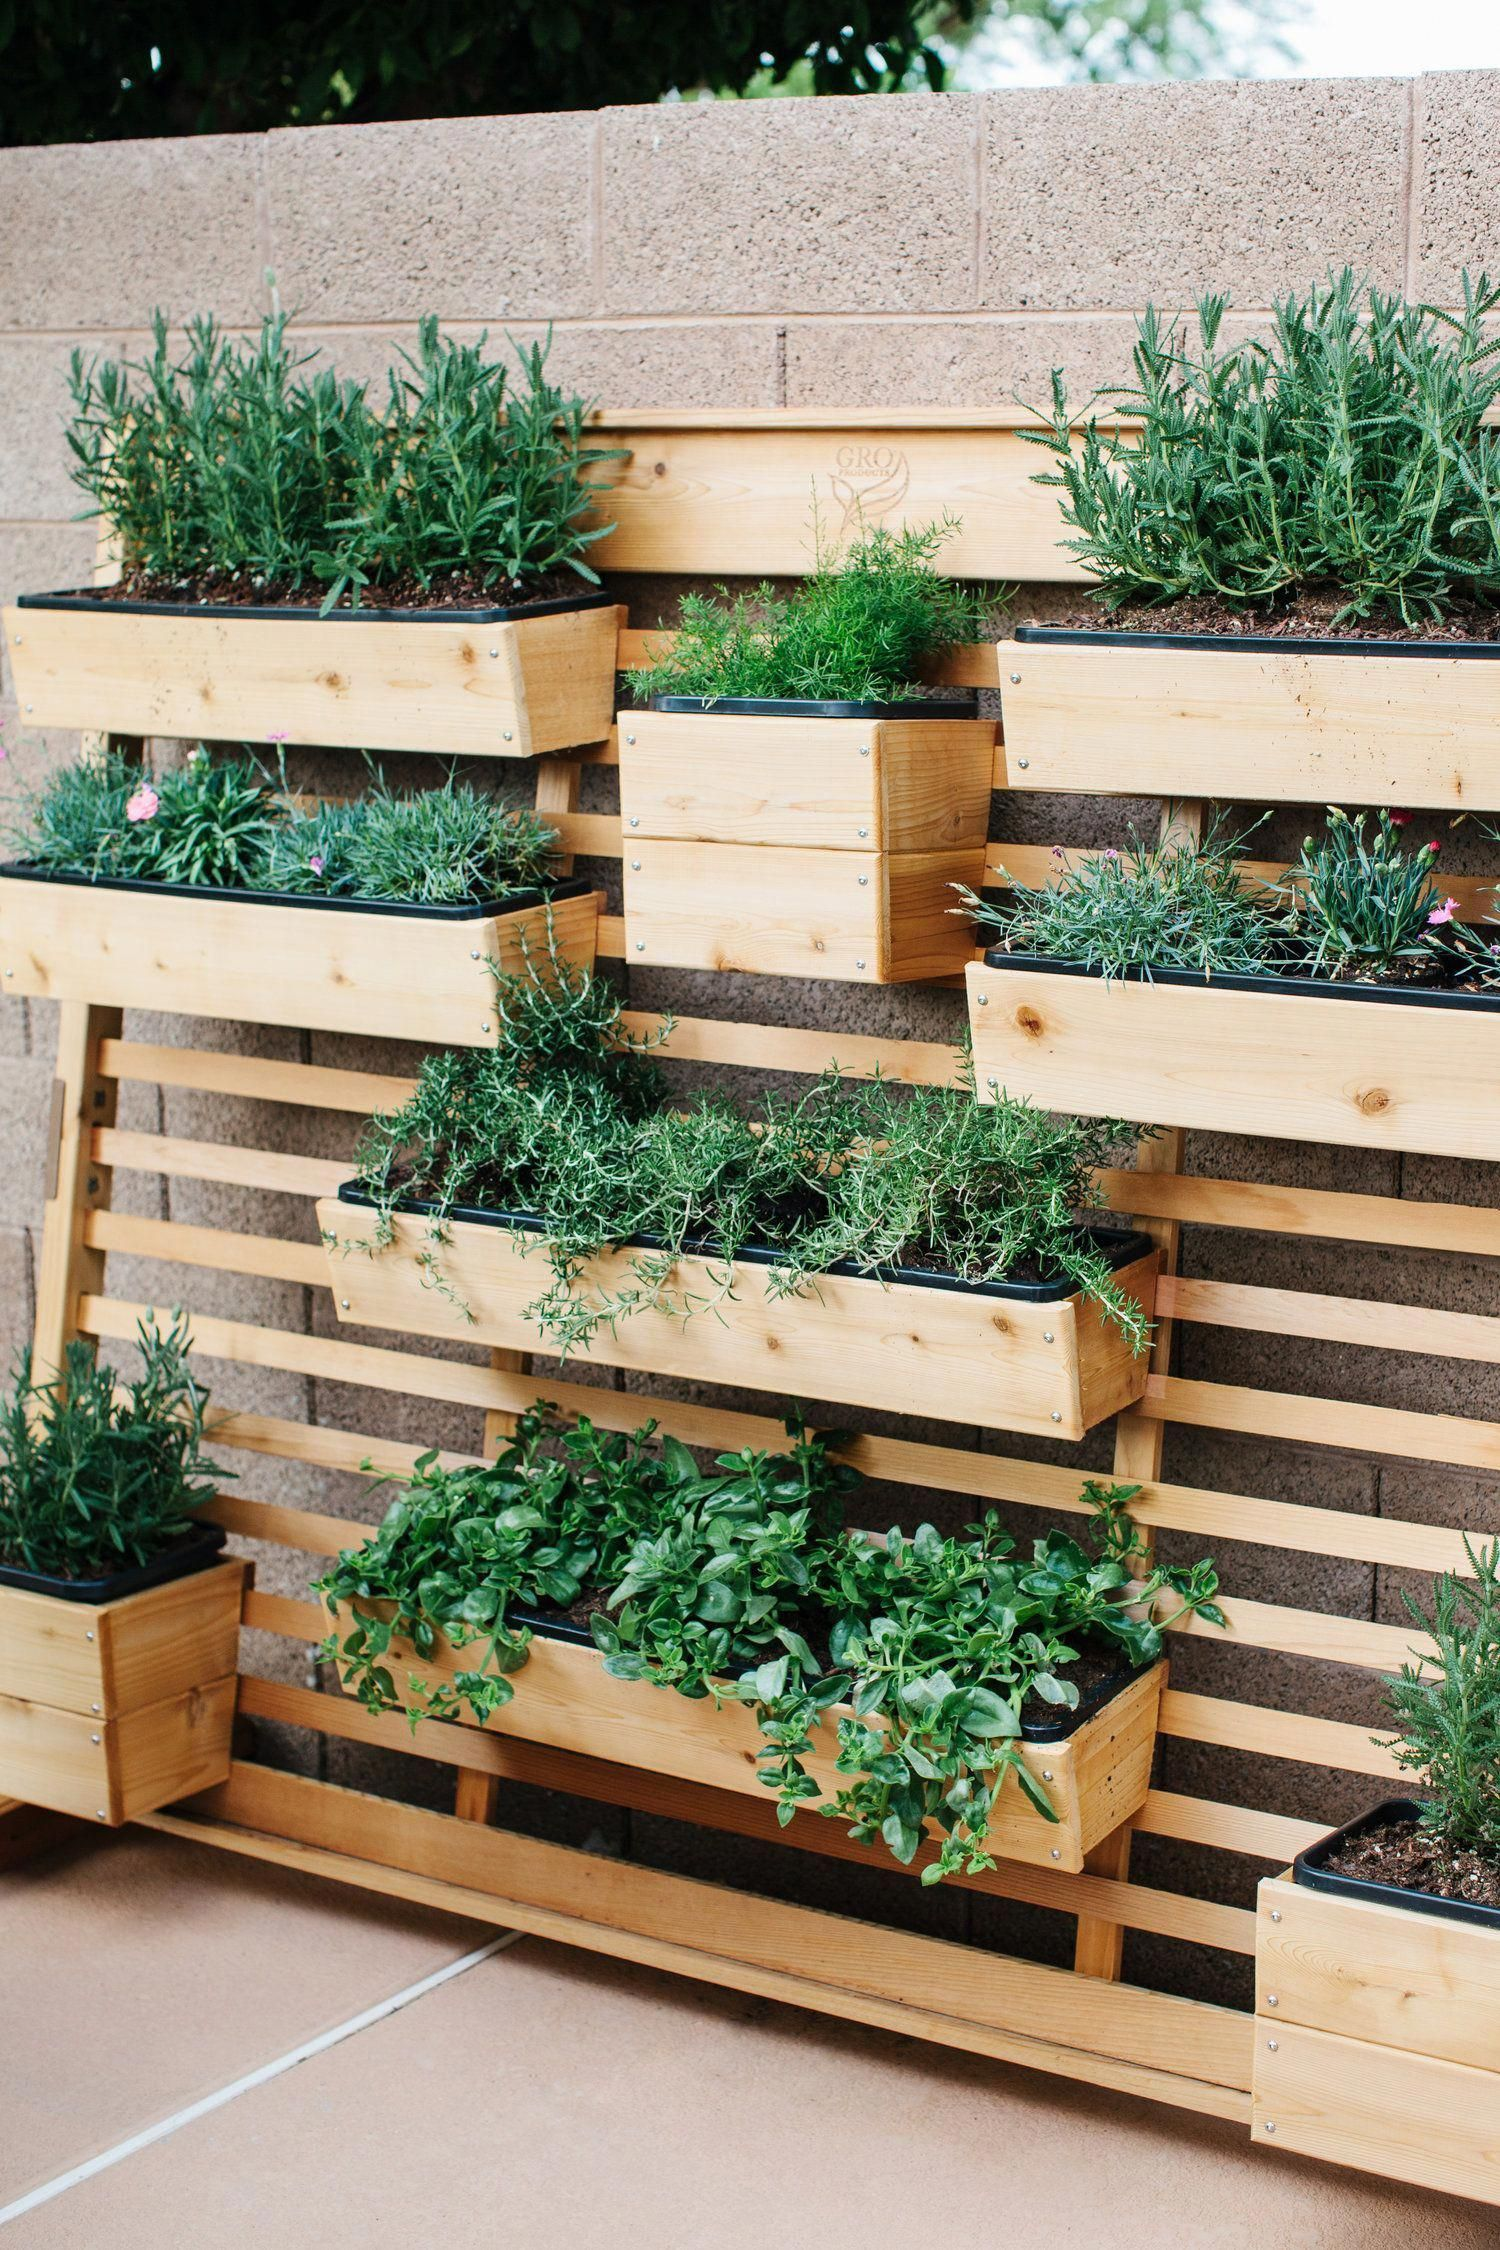 simple wood living wall for your yard that is portable and durable ...